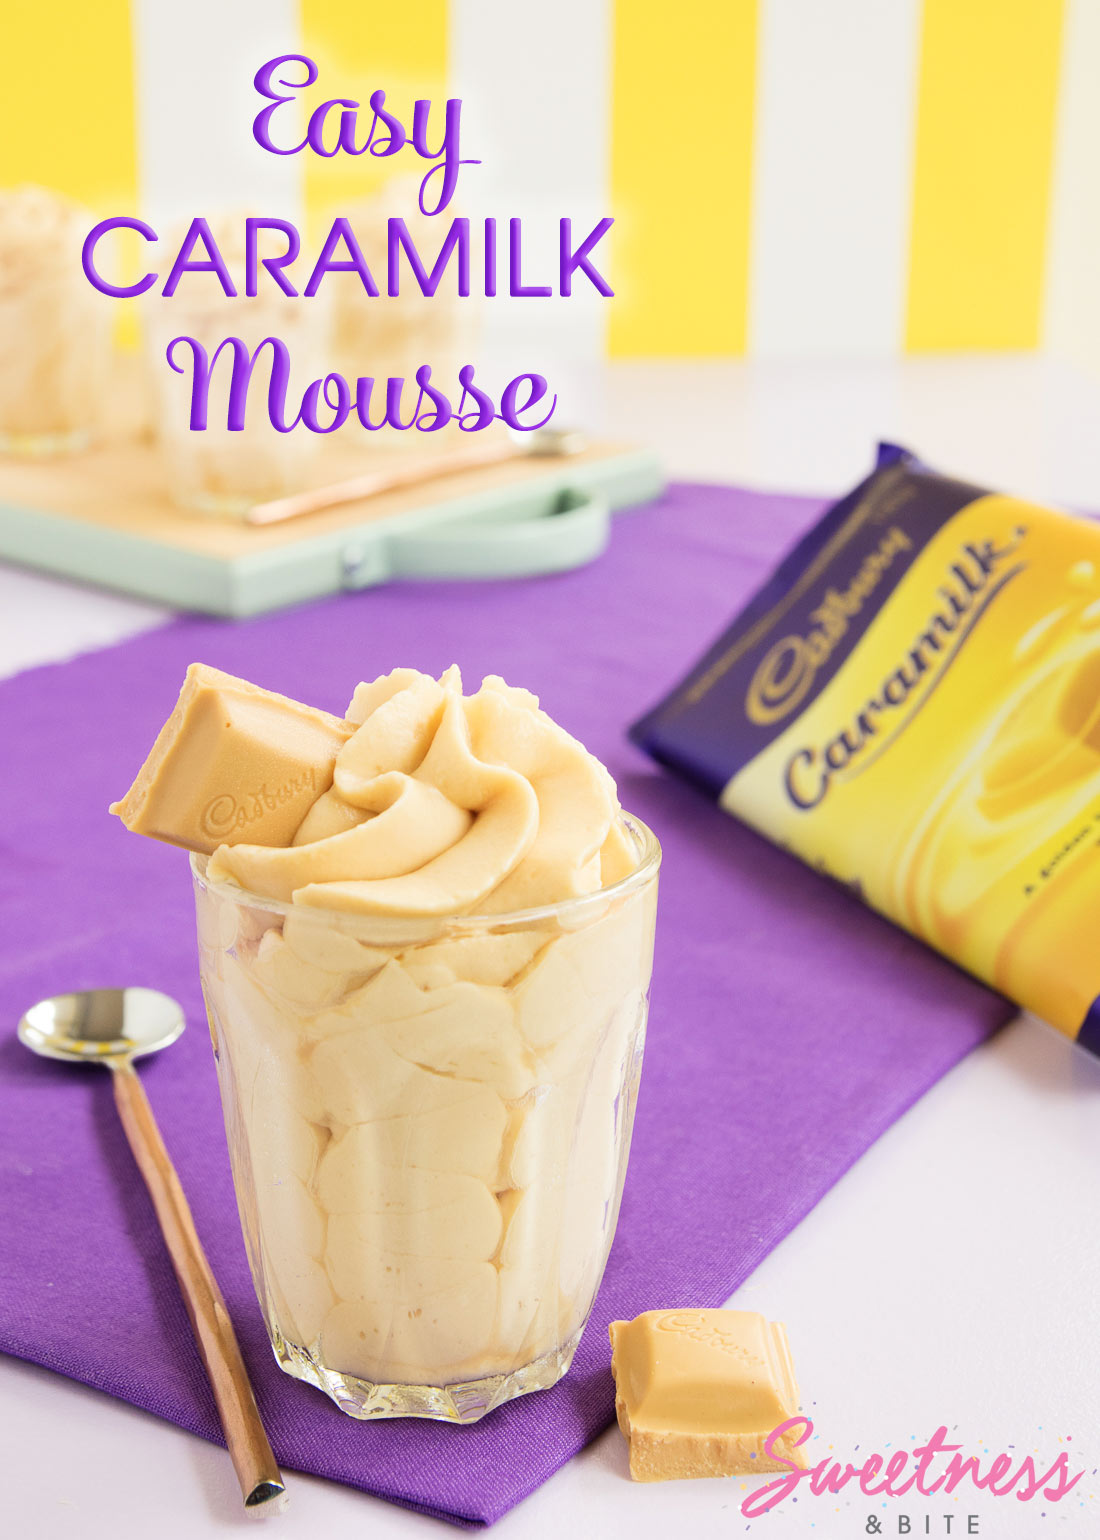 Easy Caramilk Mousse - Super easy, two-ingredient Caramilk Mousse recipe. If you love Cadbury's limited edition Caramilk chocolate, you will love this!